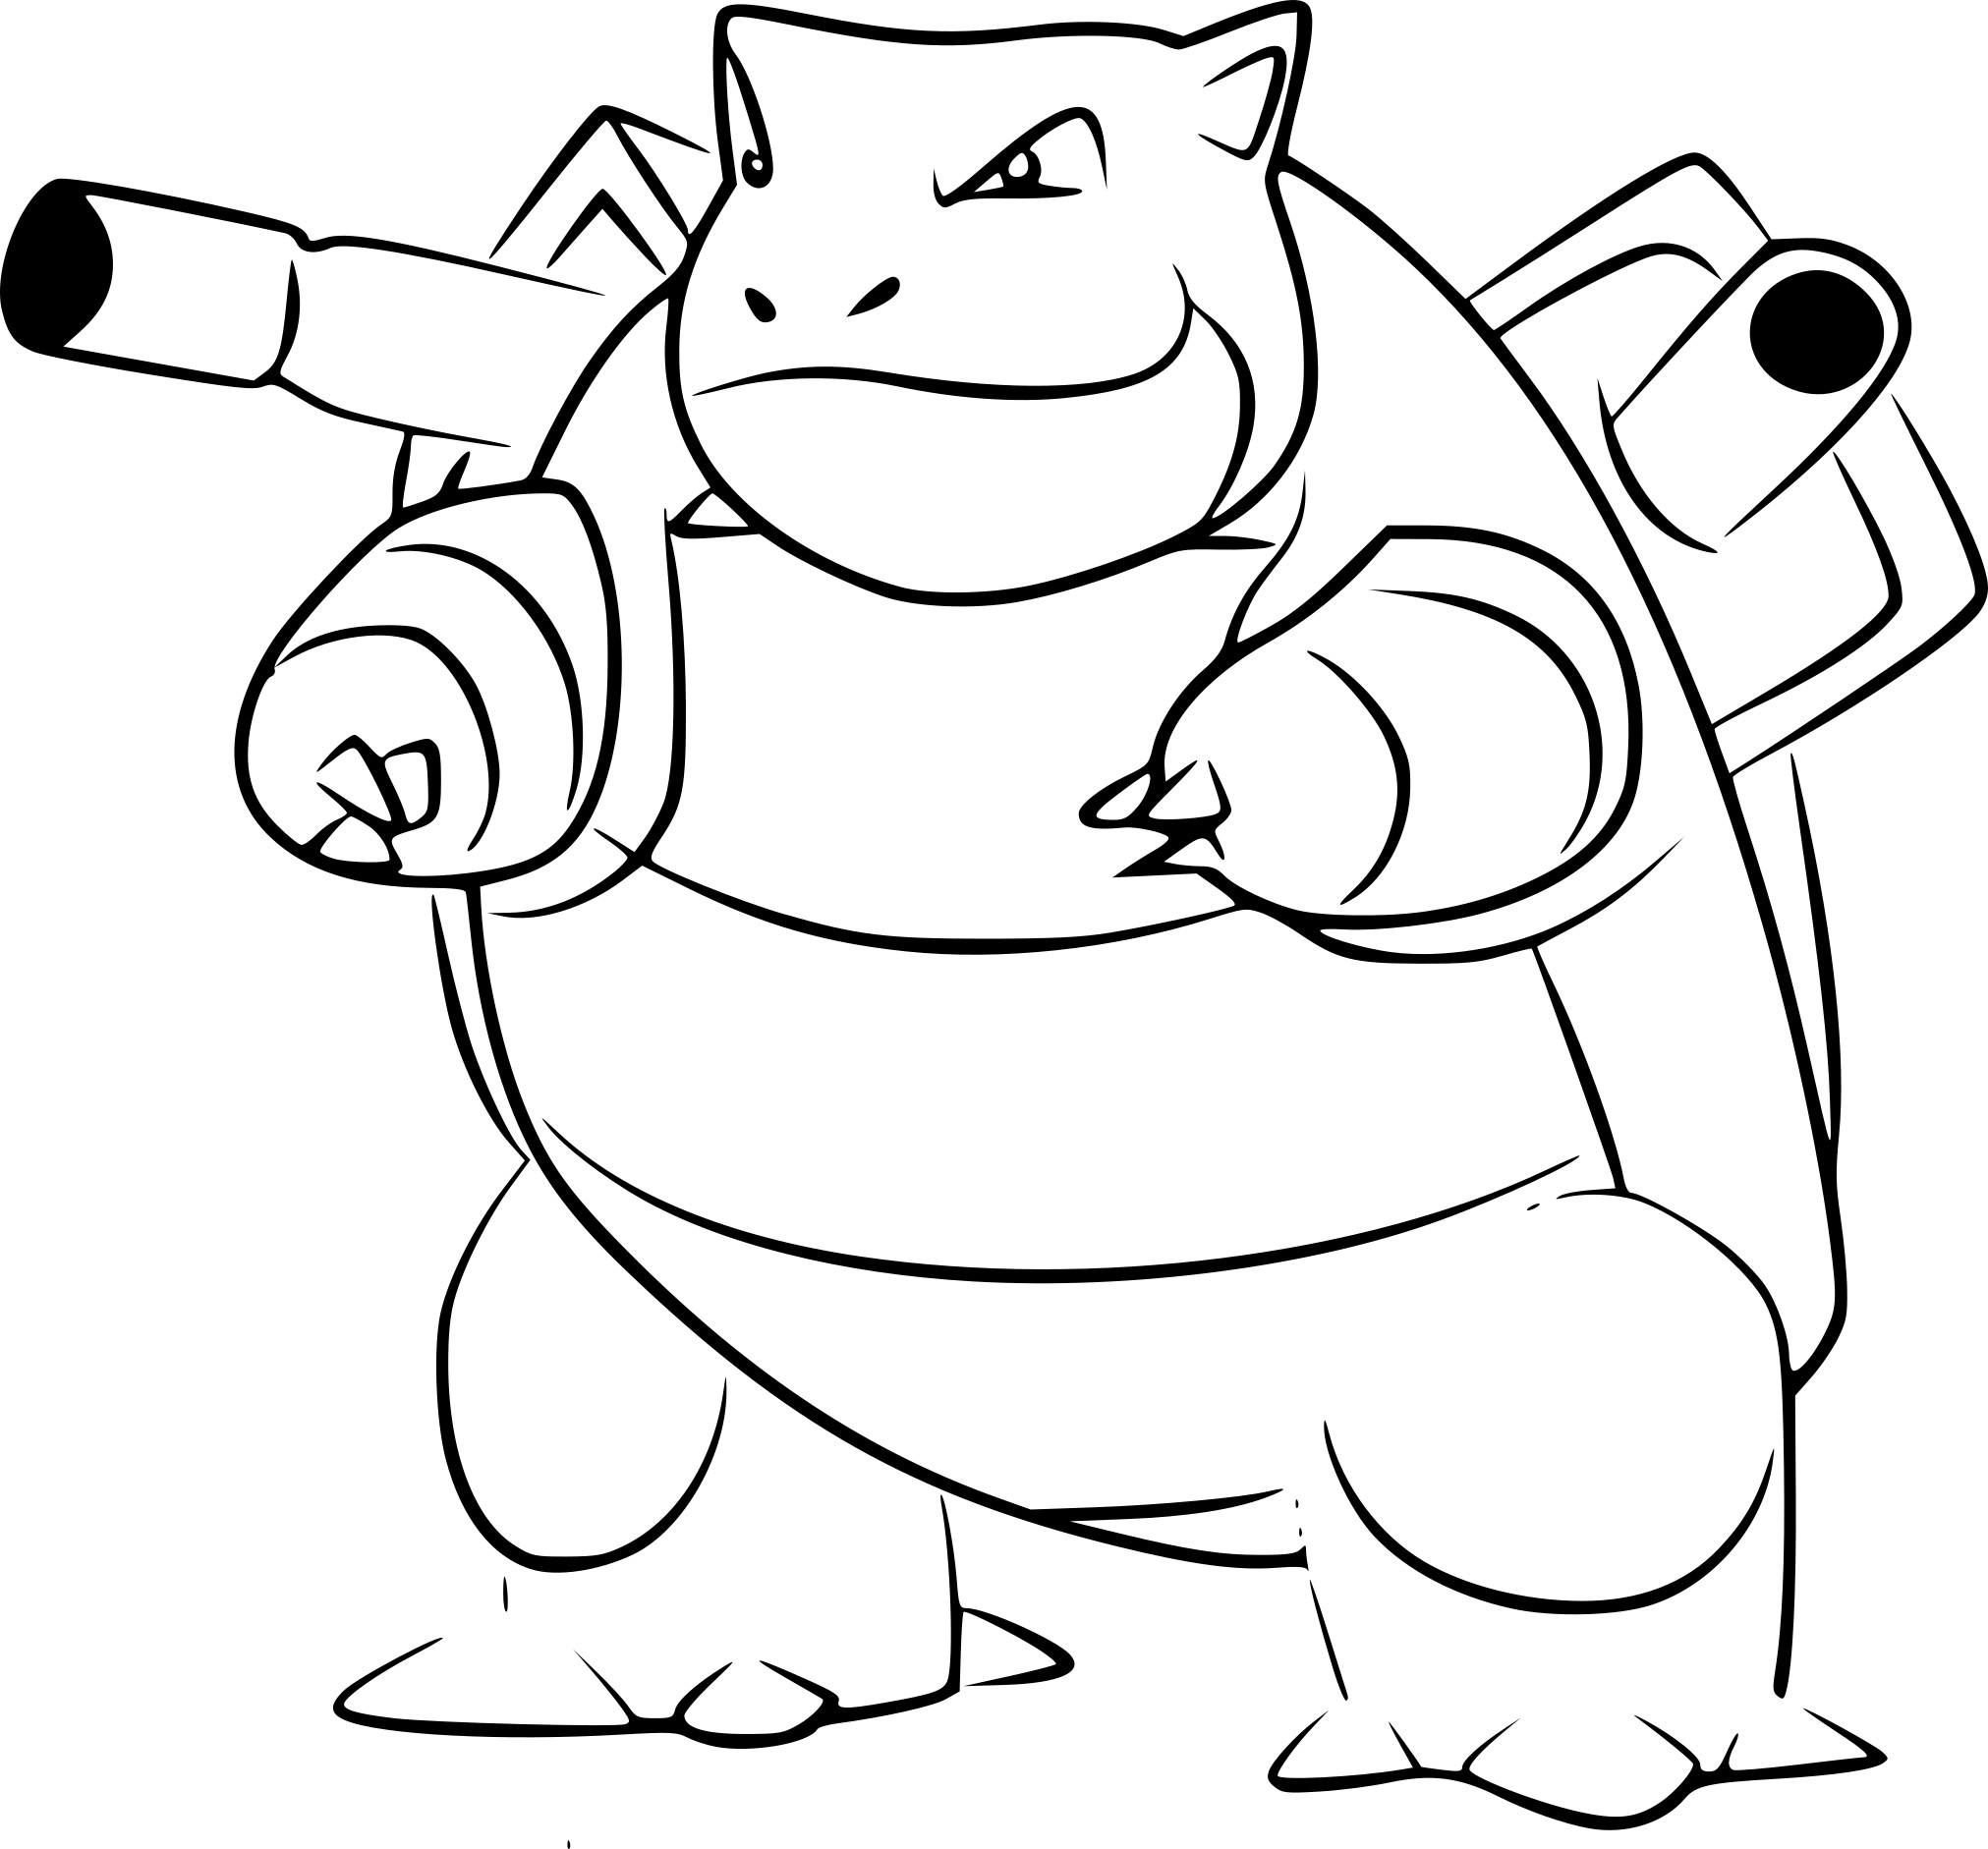 Coloriage Tortank Pokemon Go 224 Imprimer Sur Coloriages Info The Tank Coloring Pages